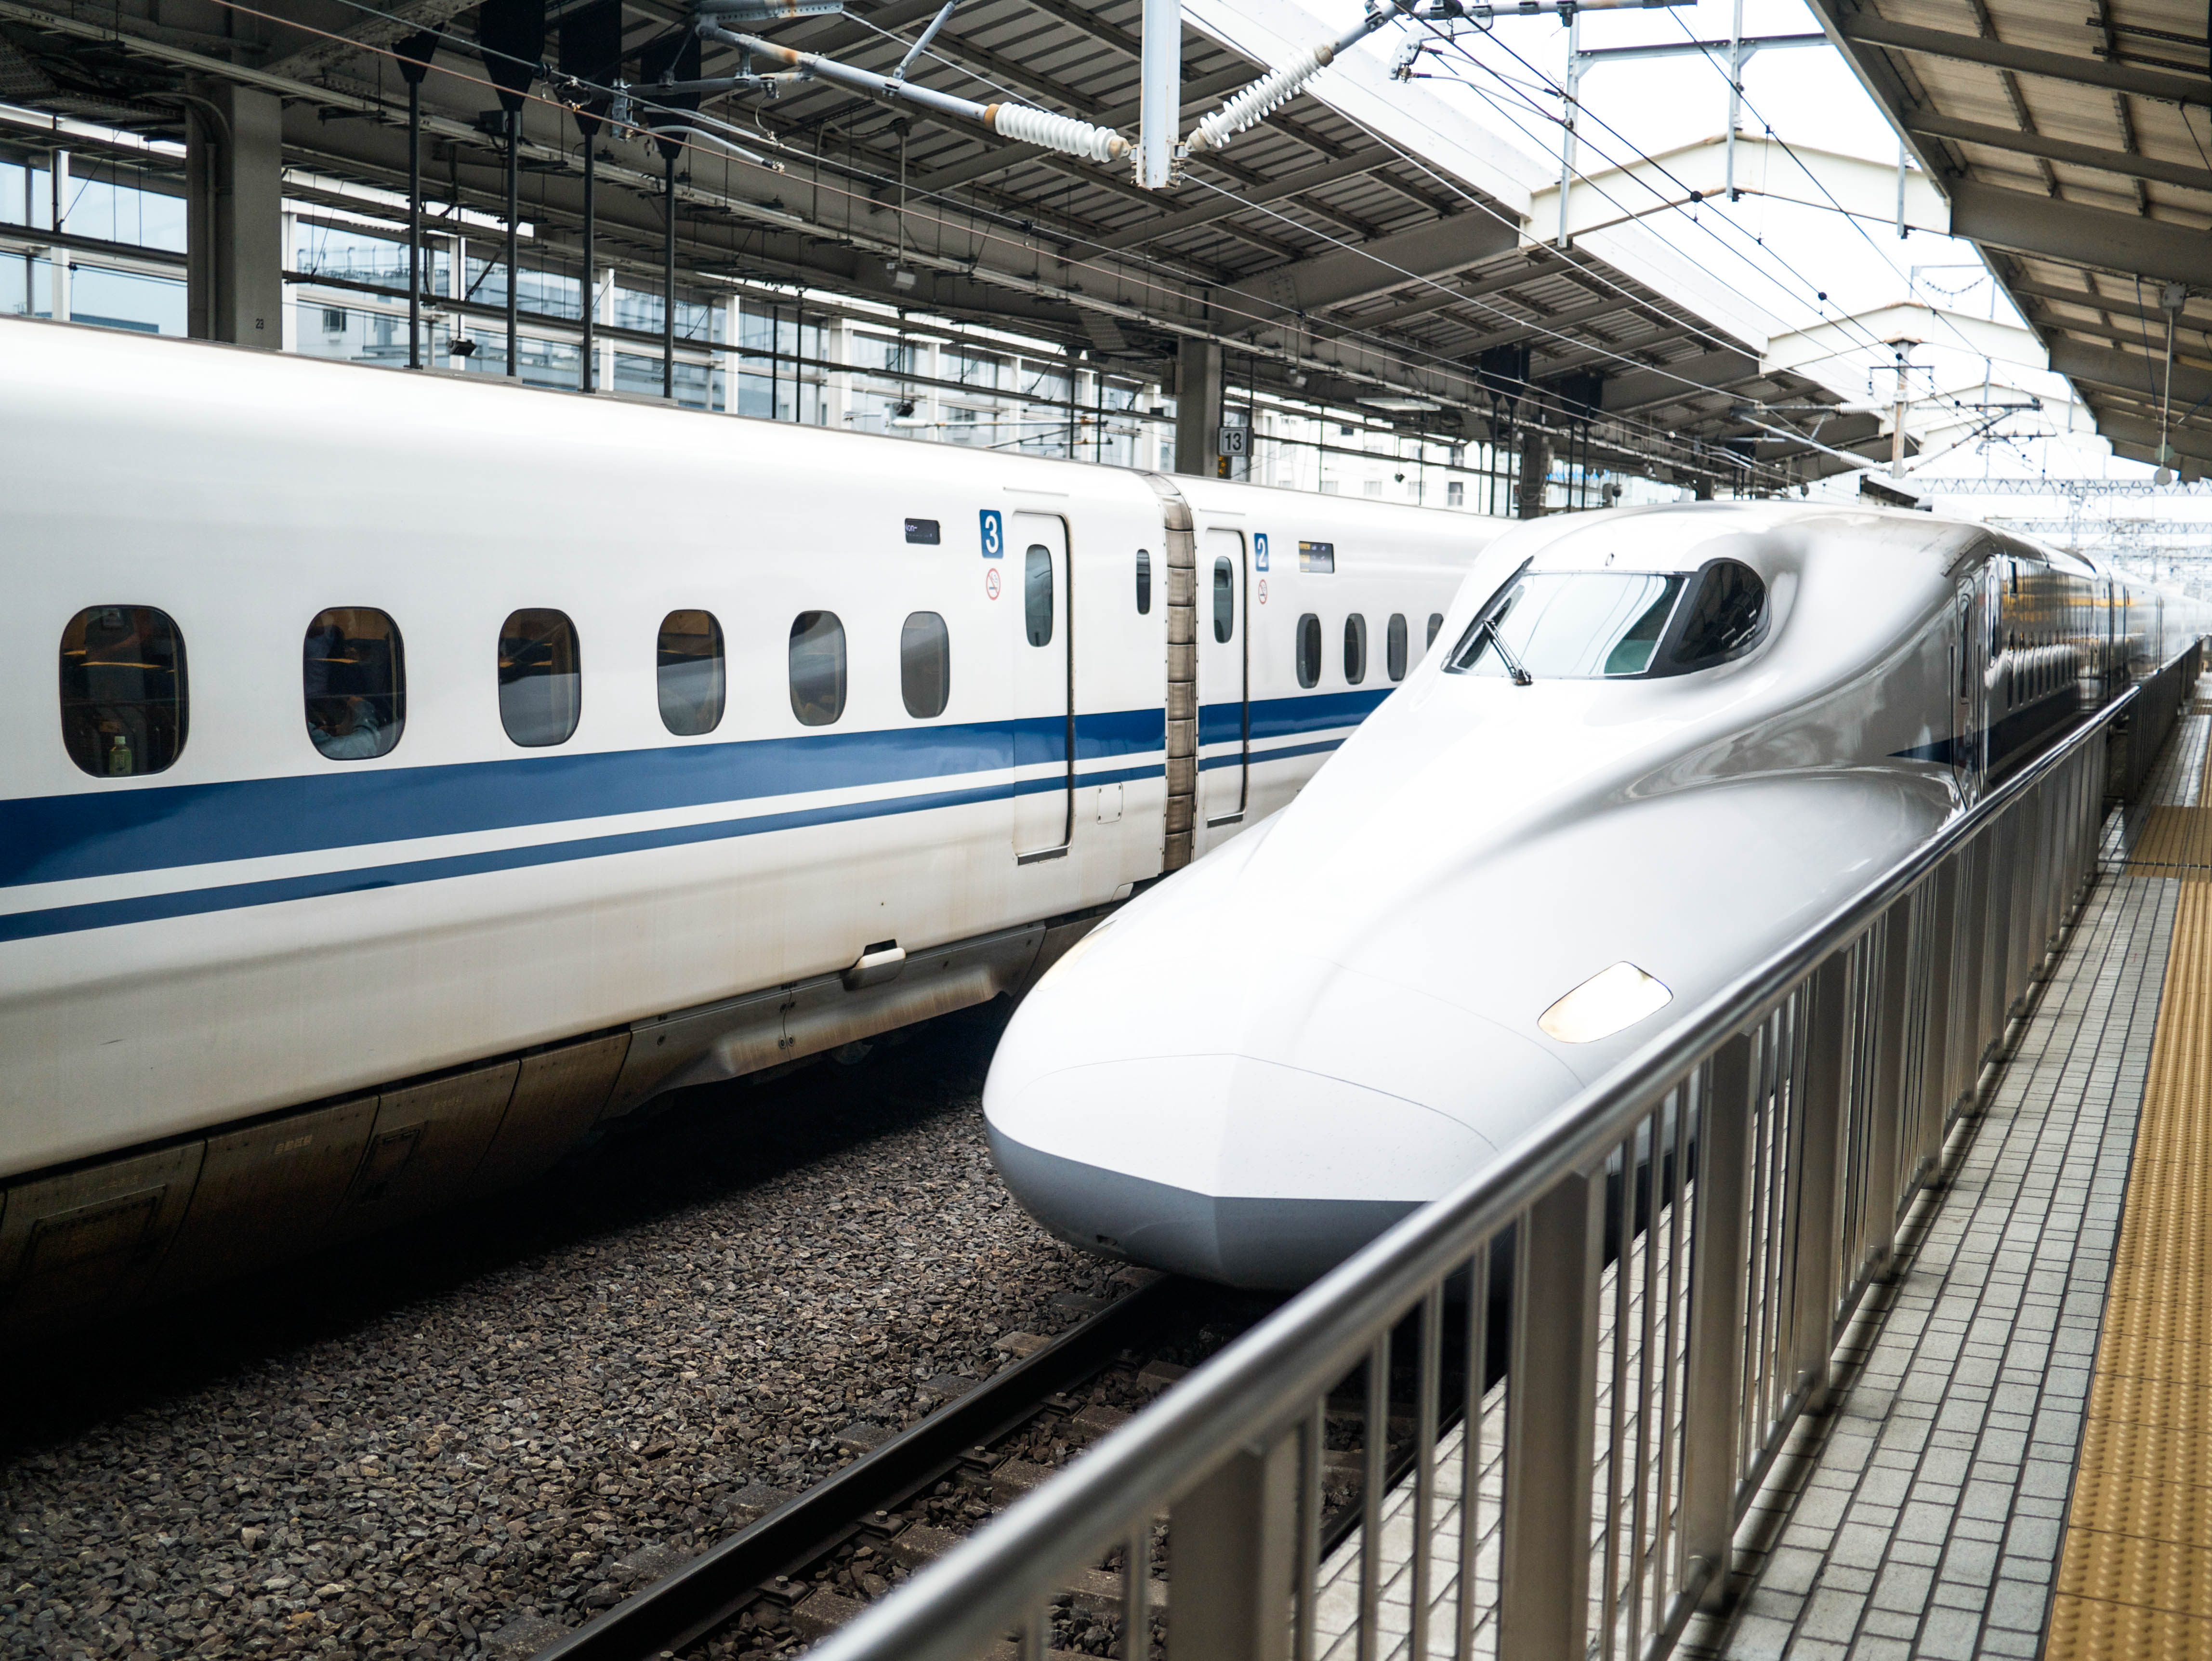 taking a ride on one of the world's fastest bullet trains ...